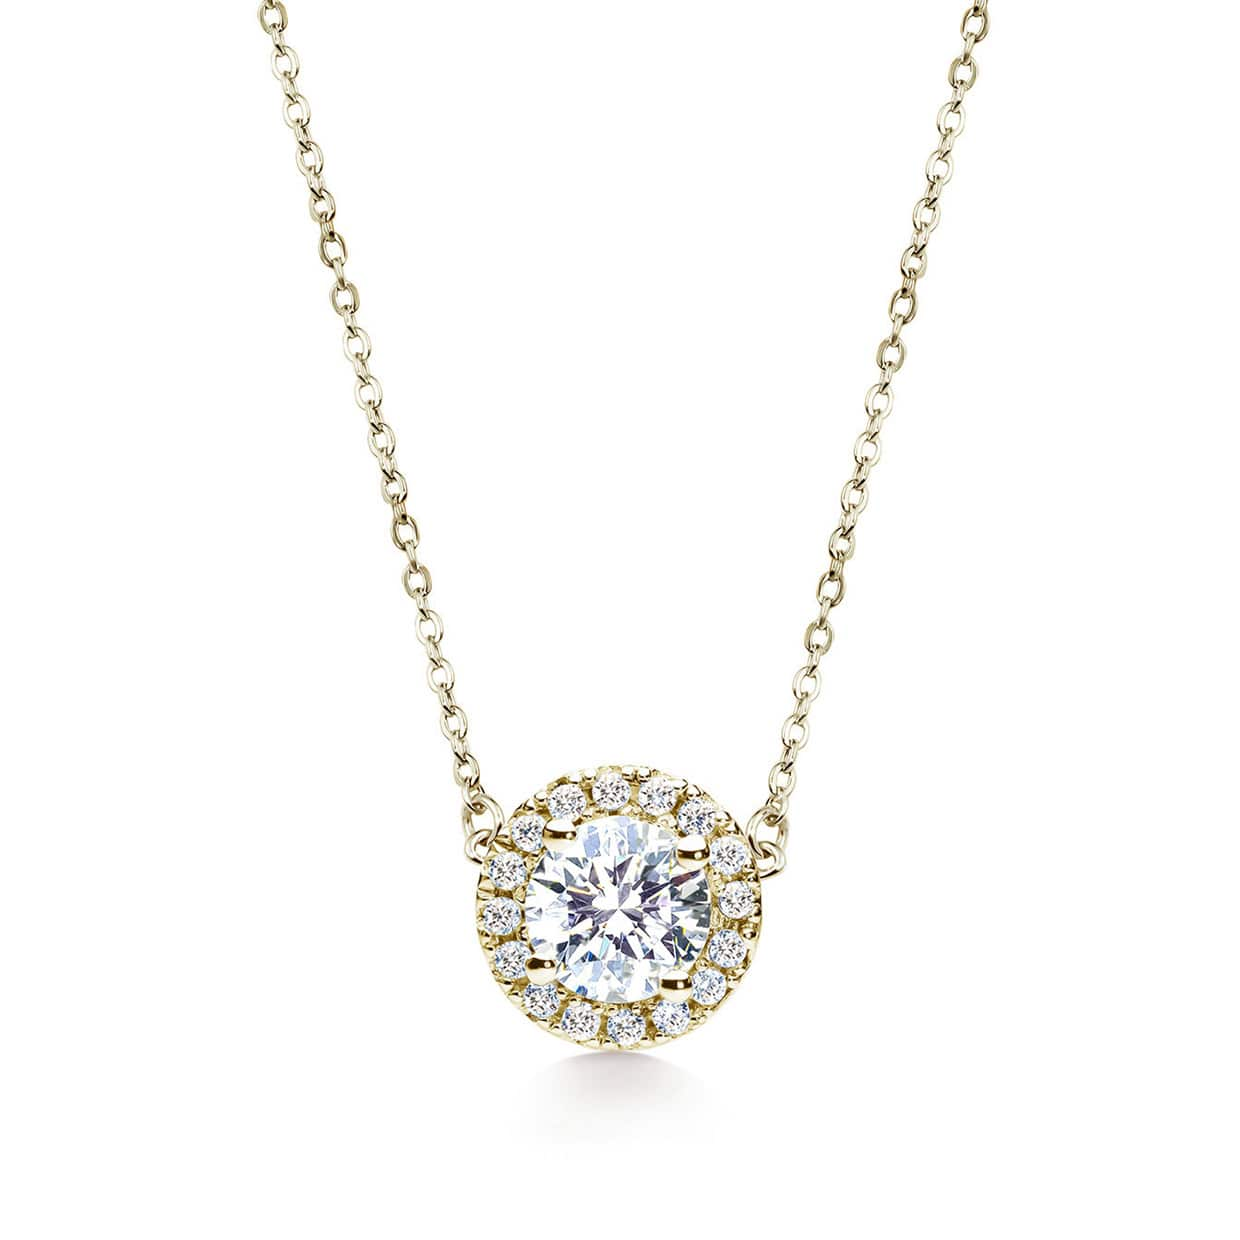 Oxford Gold Round Cut Halo Necklace - Abelstedt